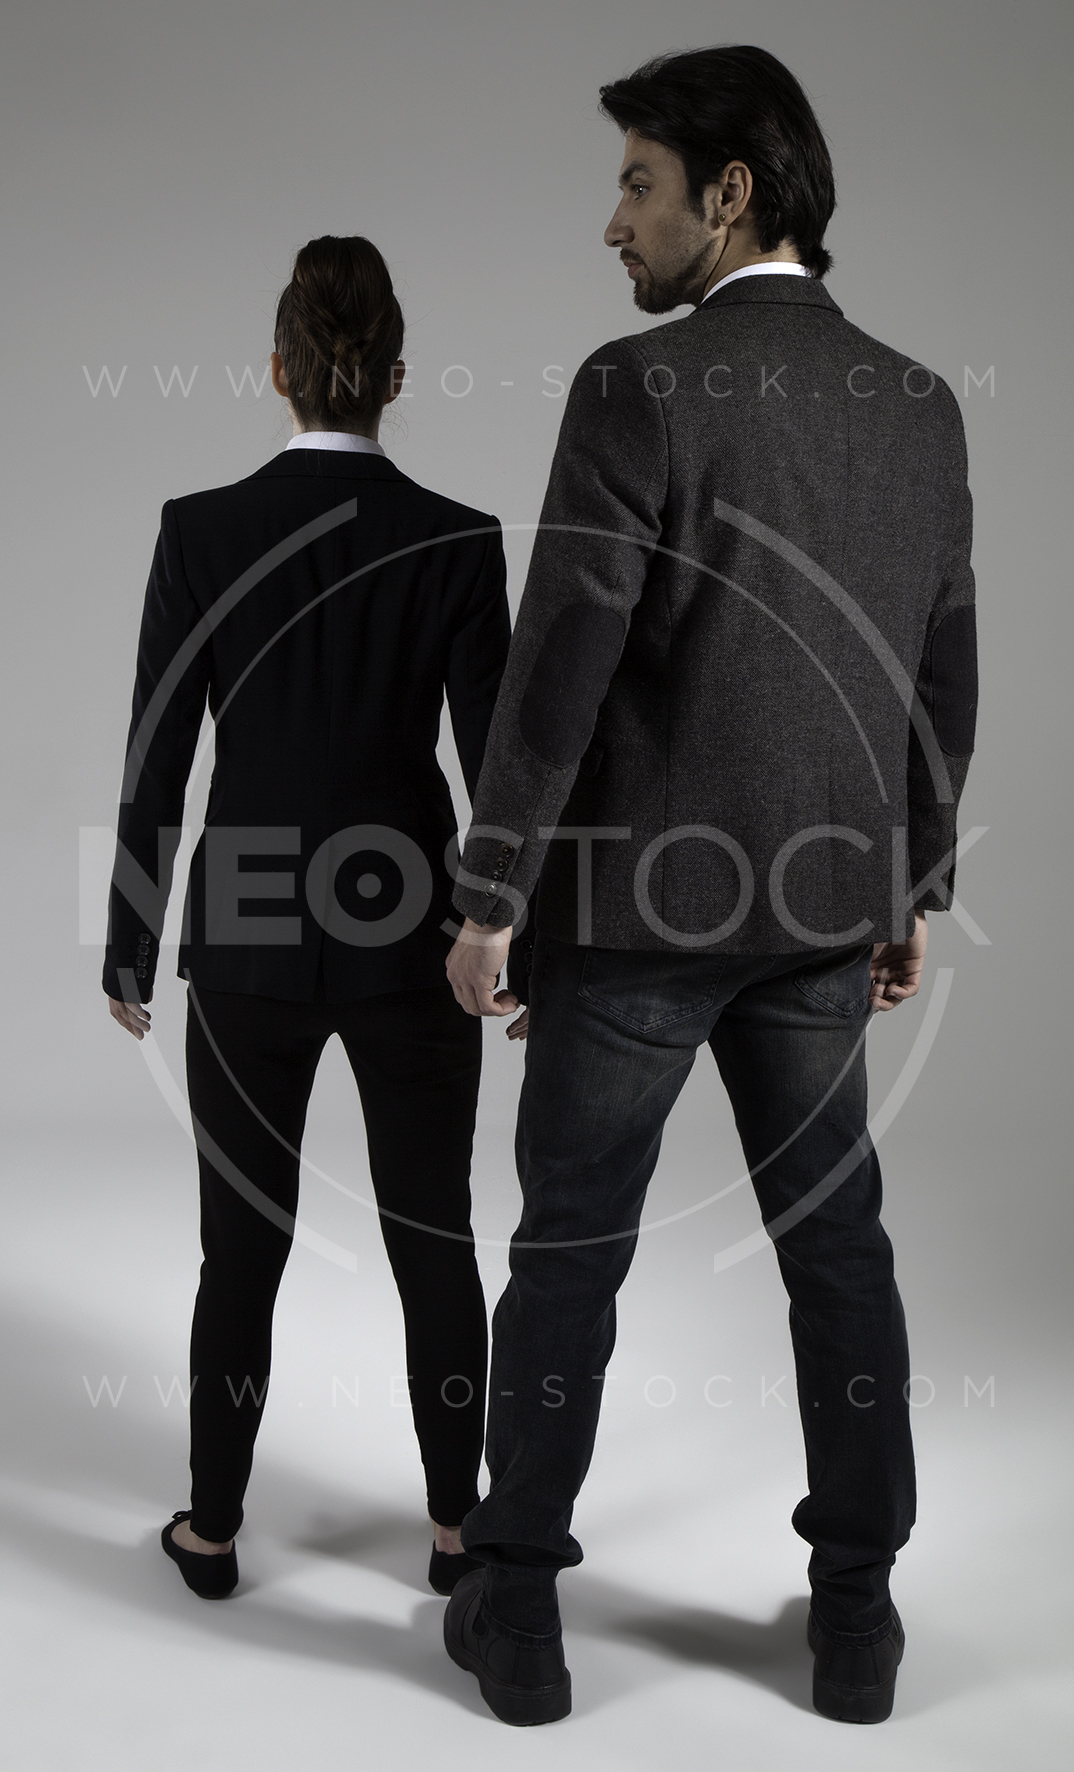 NeoStock - Cop Drama Duo - Stock Photography I